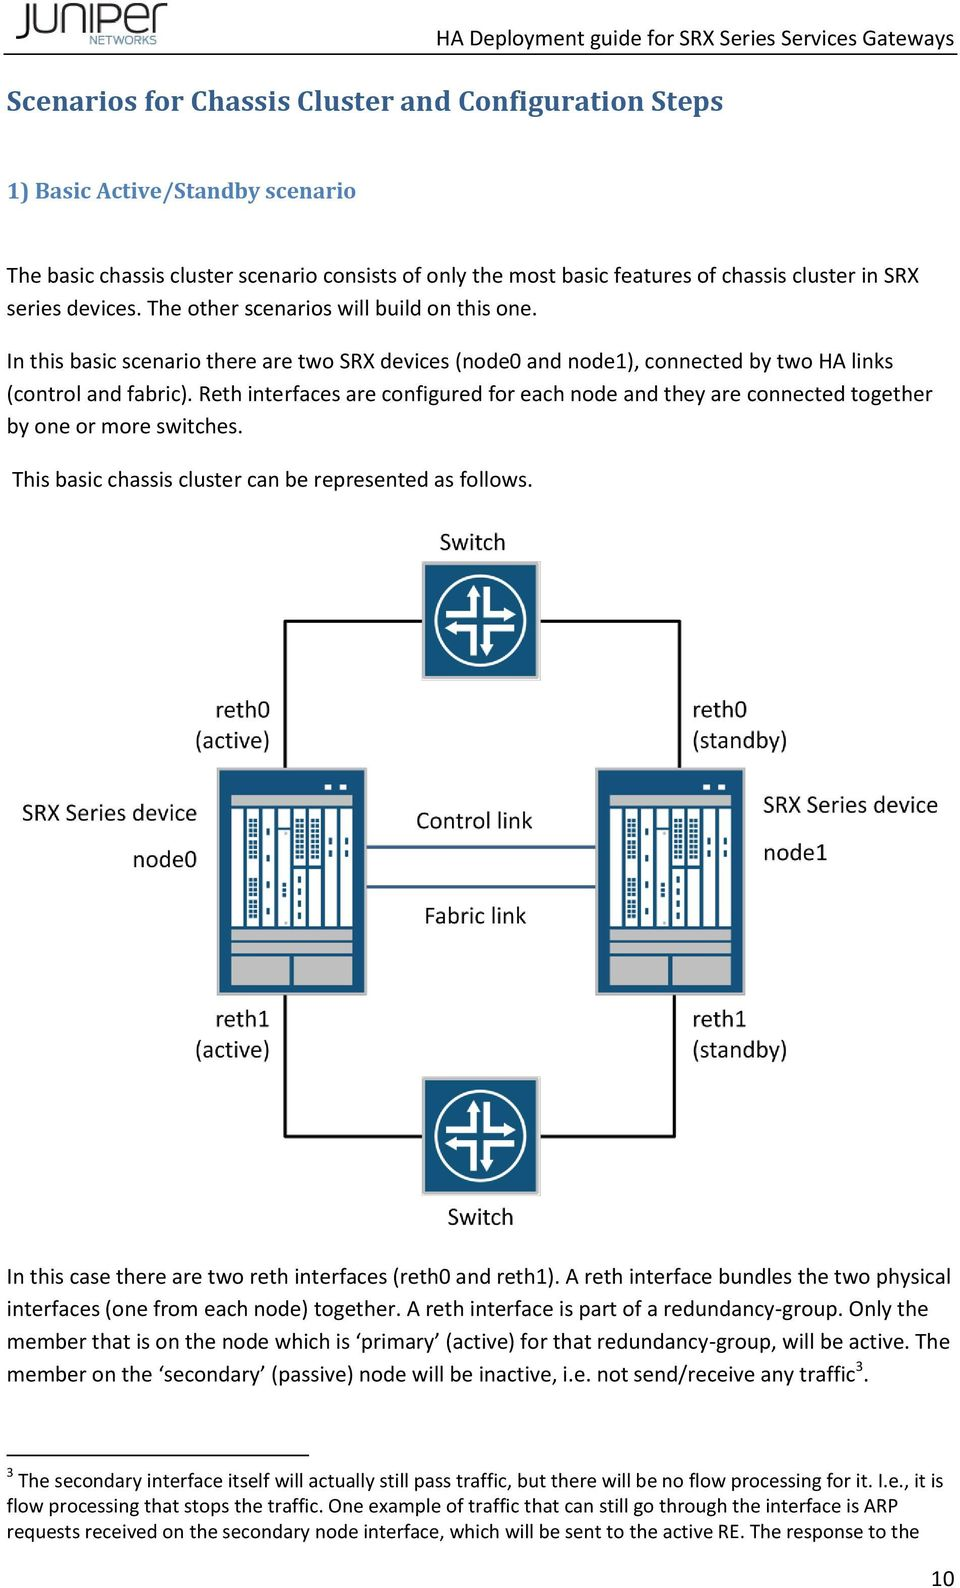 Deployment Guide for SRX Series Services Gateways in Chassis